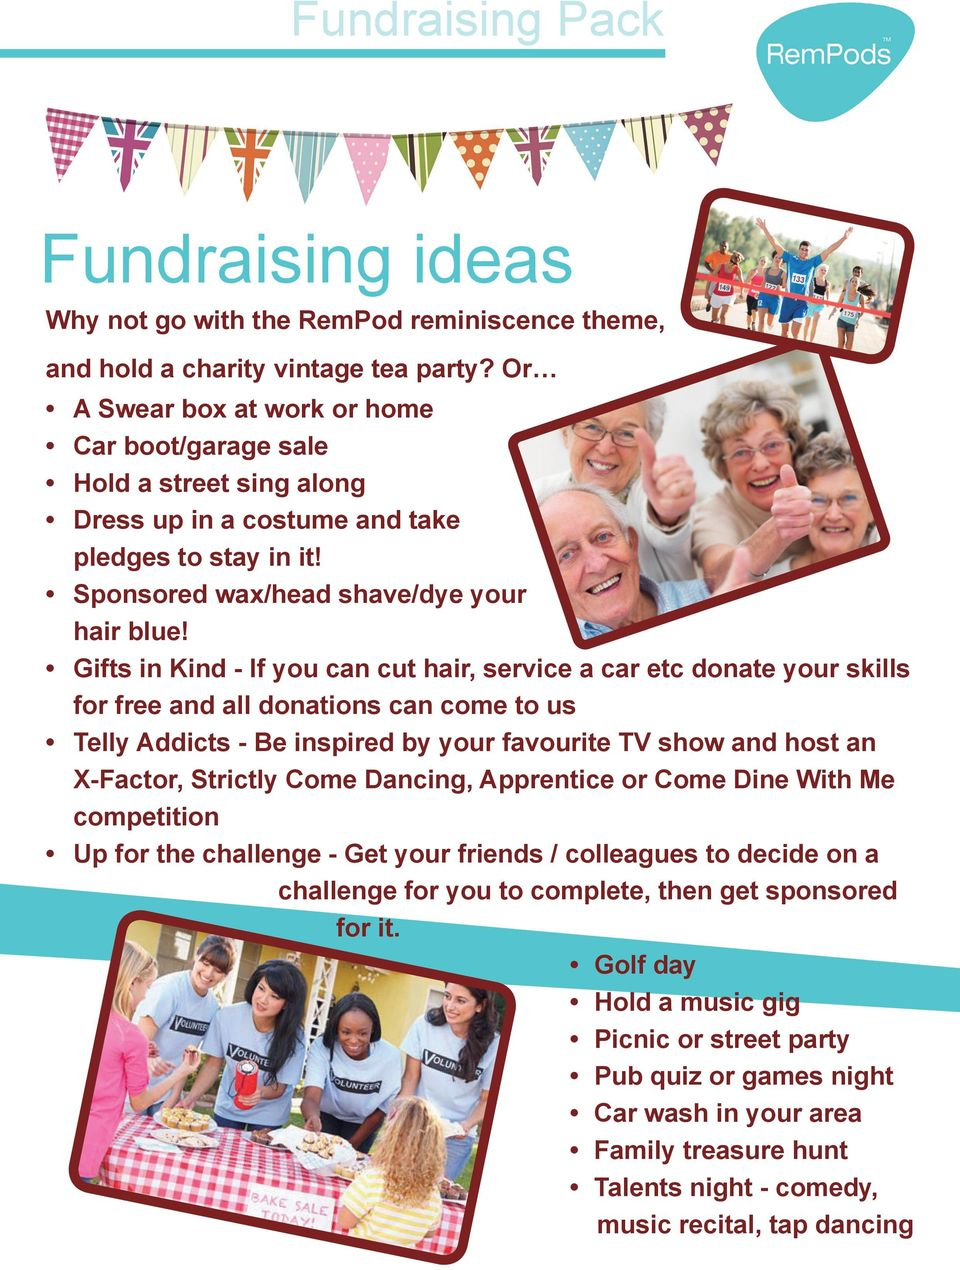 Gifts in Kind - If you can cut hair, service a car etc donate your skills for free and all donations can come to us Telly Addicts - Be inspired by your favourite TV show and host an X-Factor,